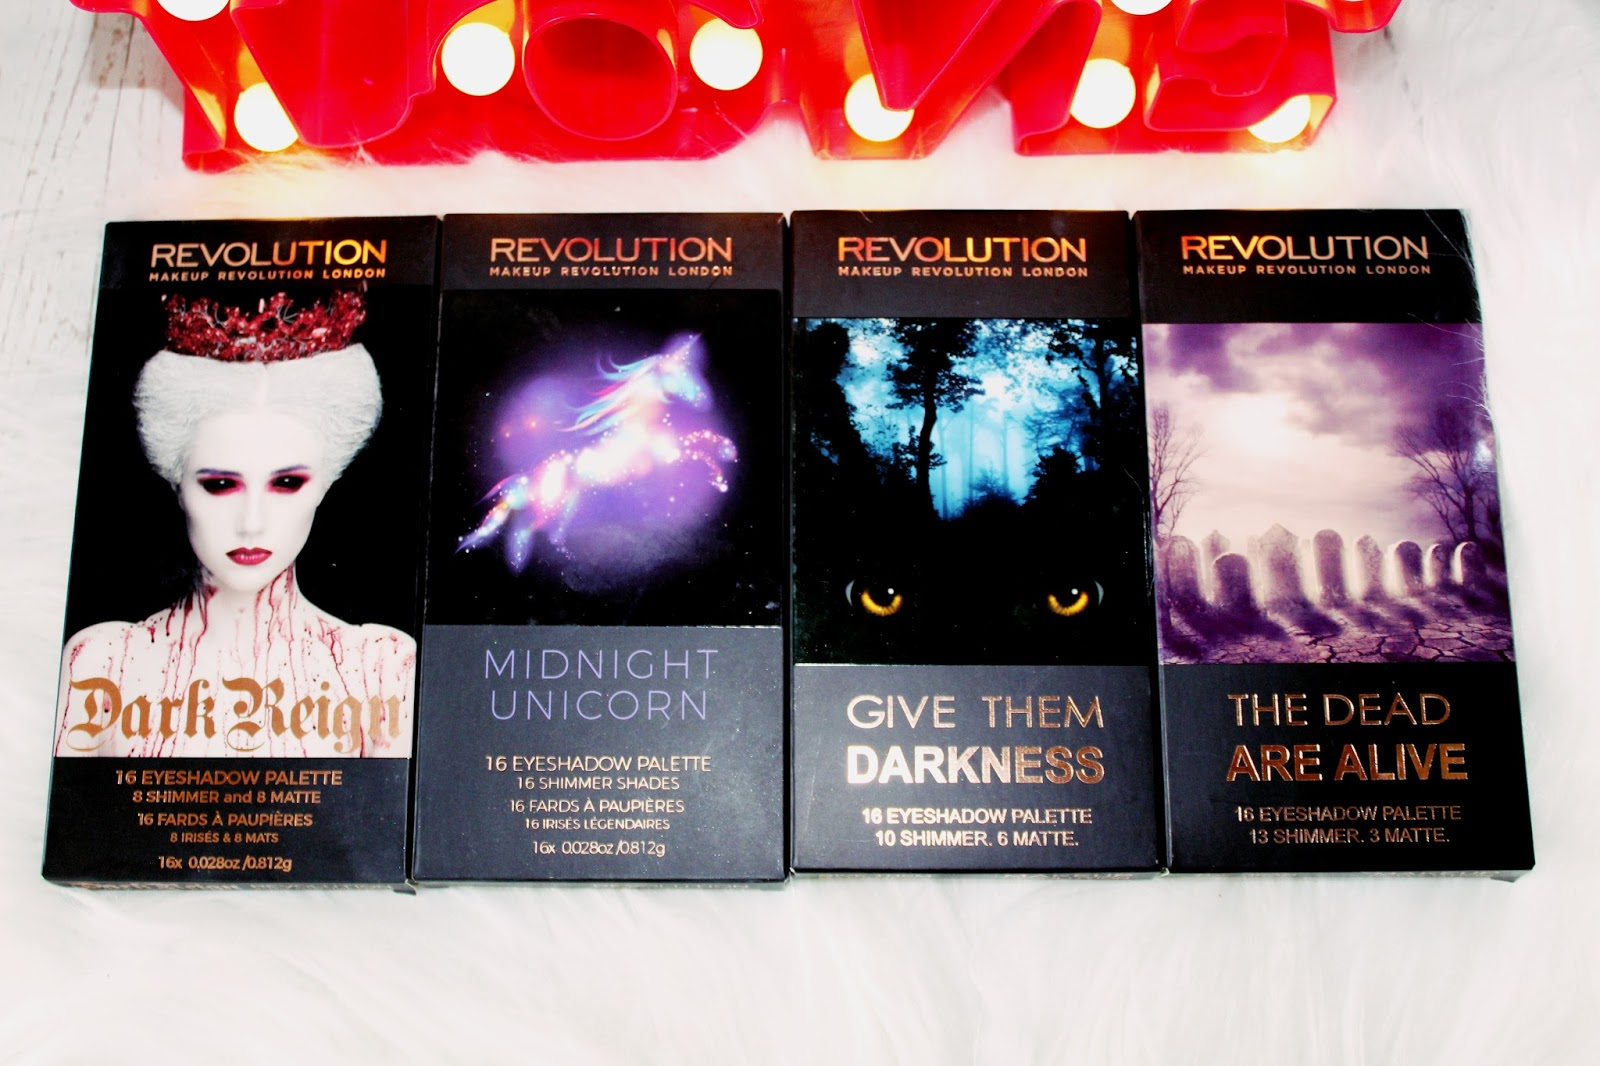 Dark Reign, Midnight Unicorn, Give Them Darkness, The Dead Are Alive / MAKEUP REVOLUTION